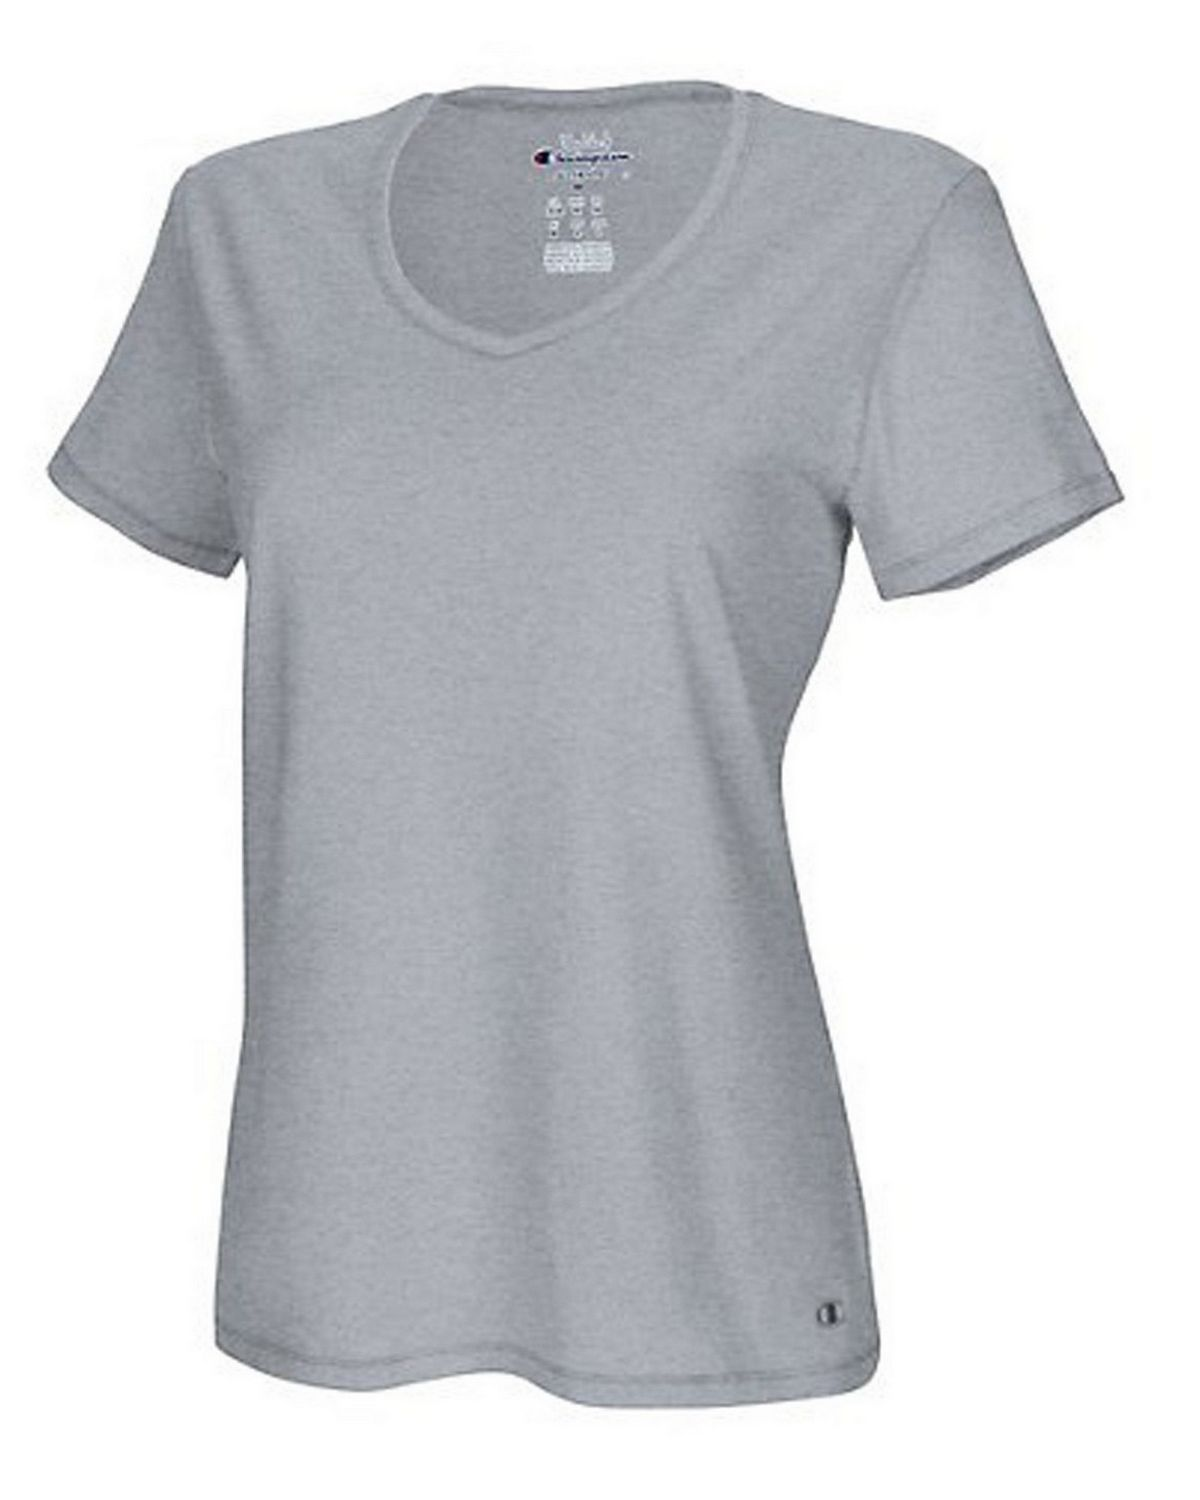 Champion 8875 Authentic Womens Jersey Tee - Oxford Grey - S 8875